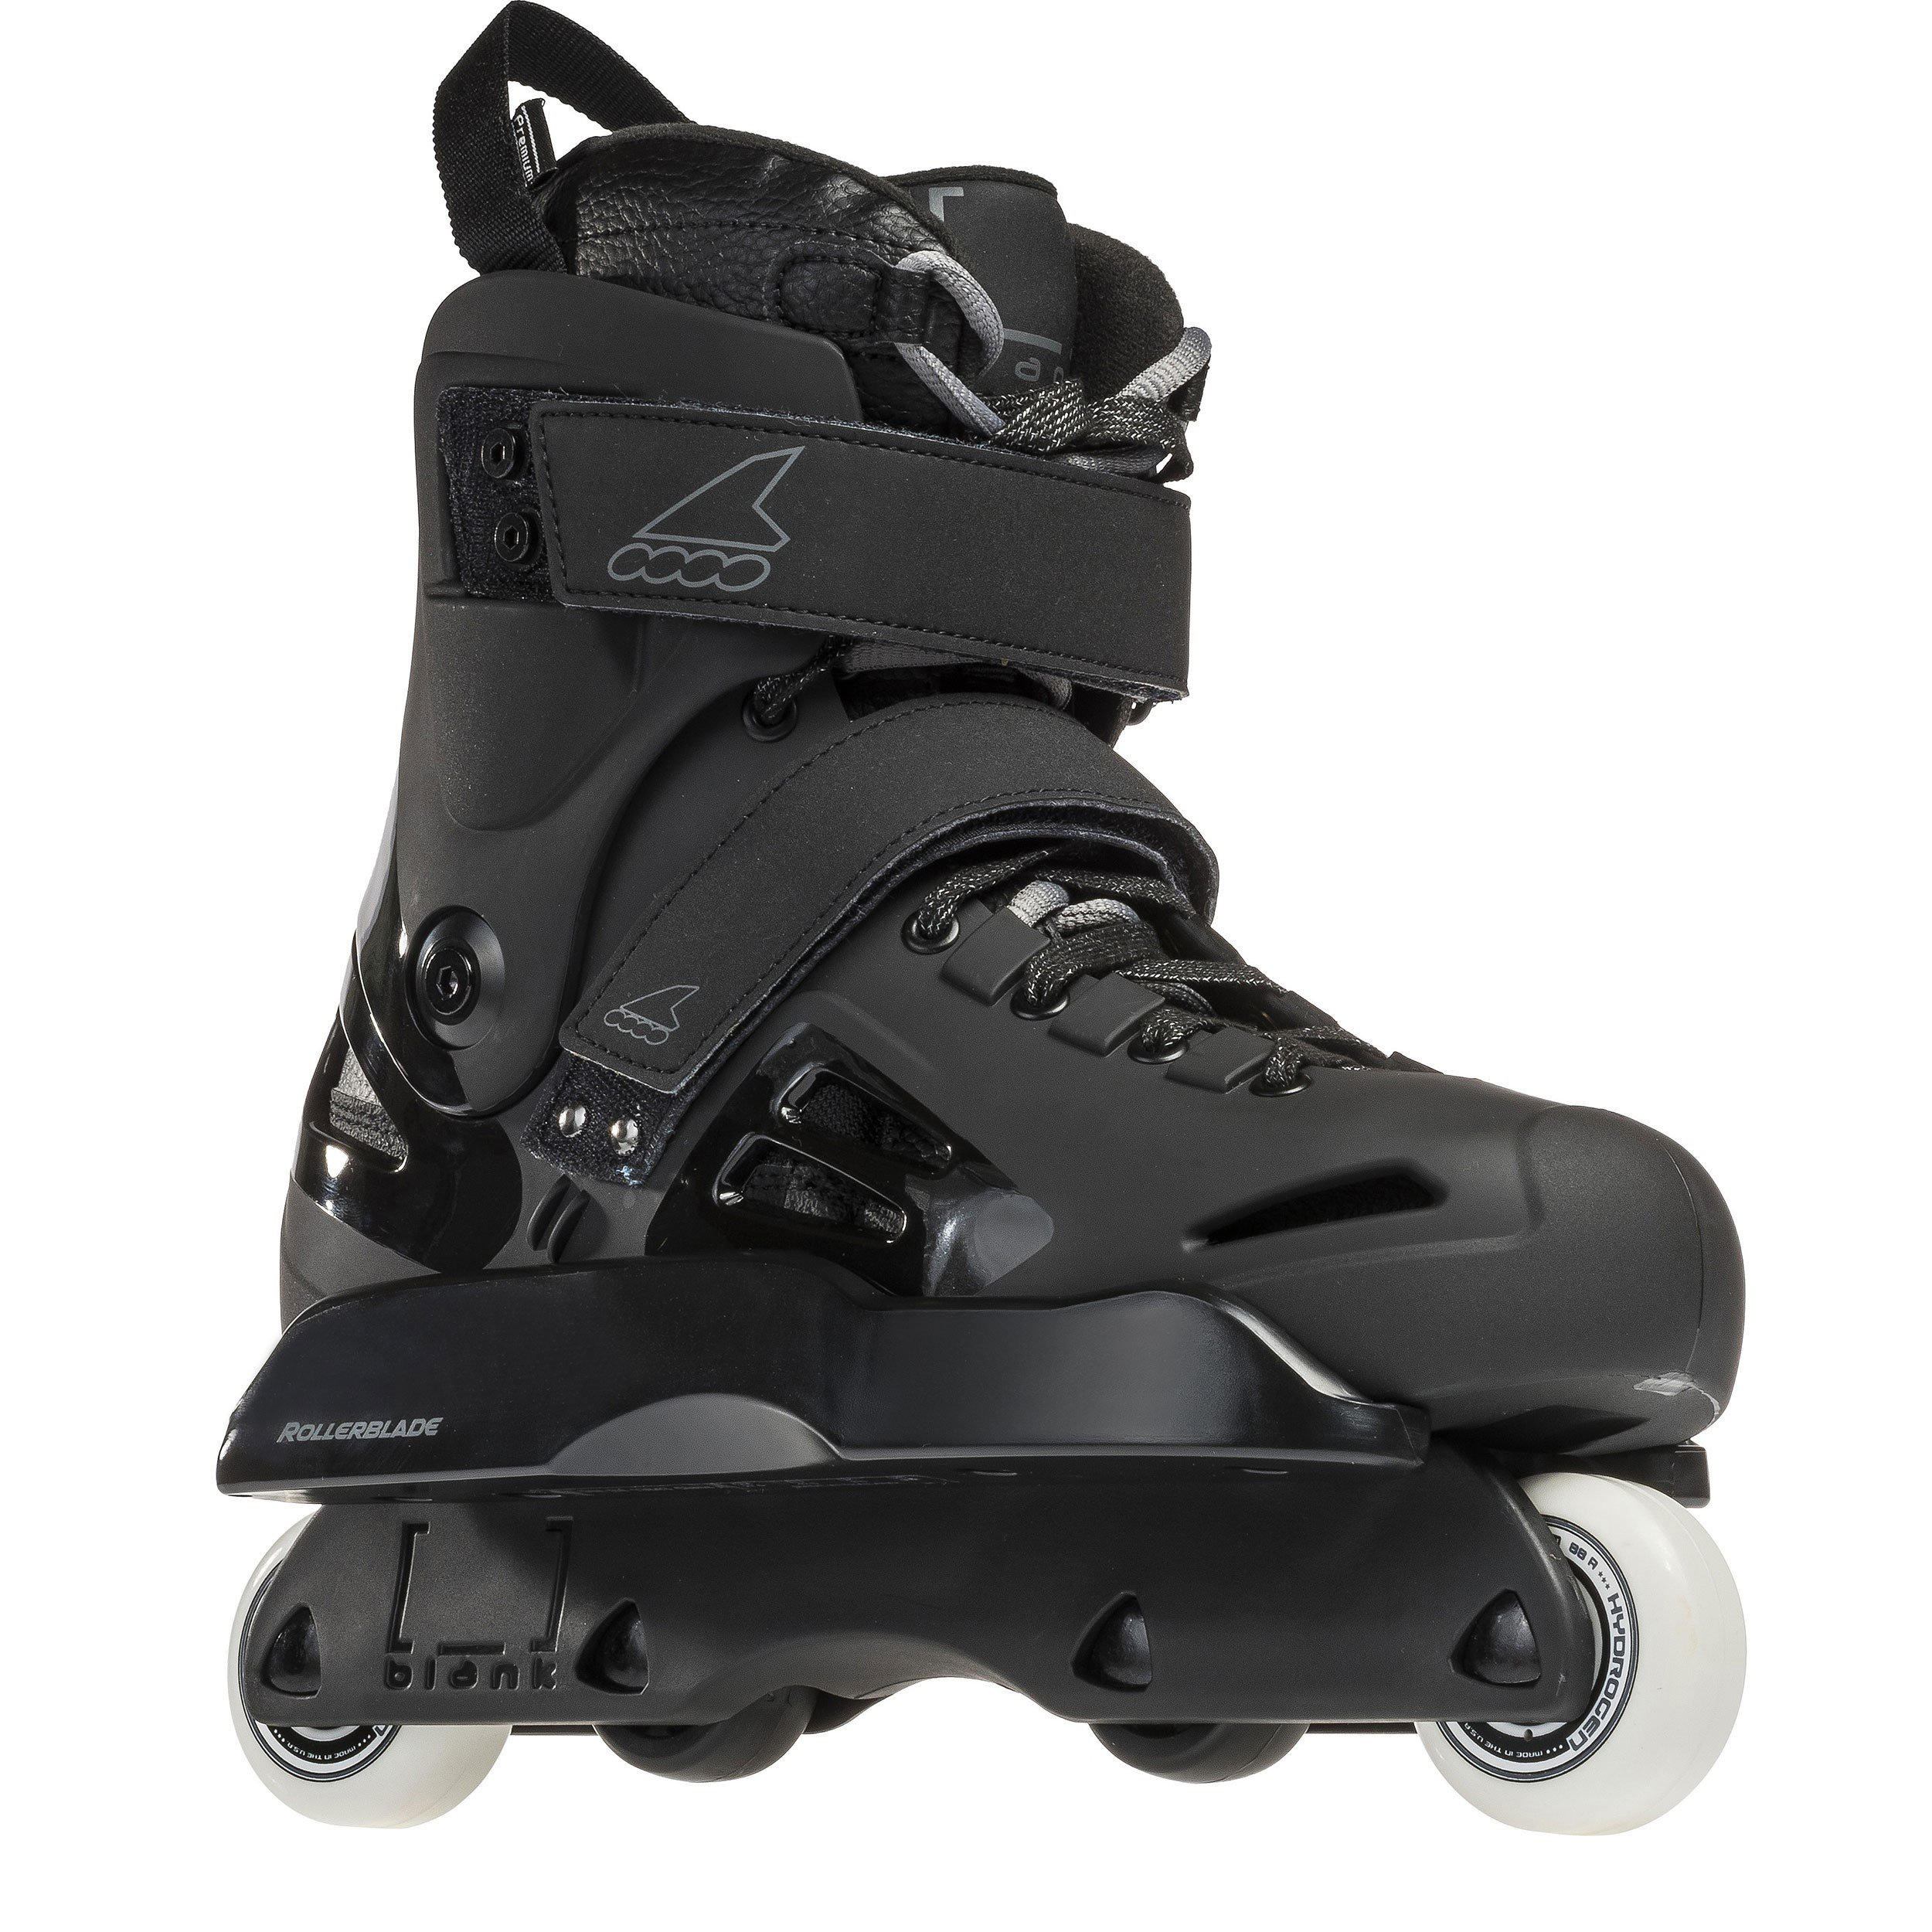 Rollerblade Rb Solo Team Street Skate - Iconic Pro Level Gear - Black - US Men's Size 7, US Size 7 by Rollerblade